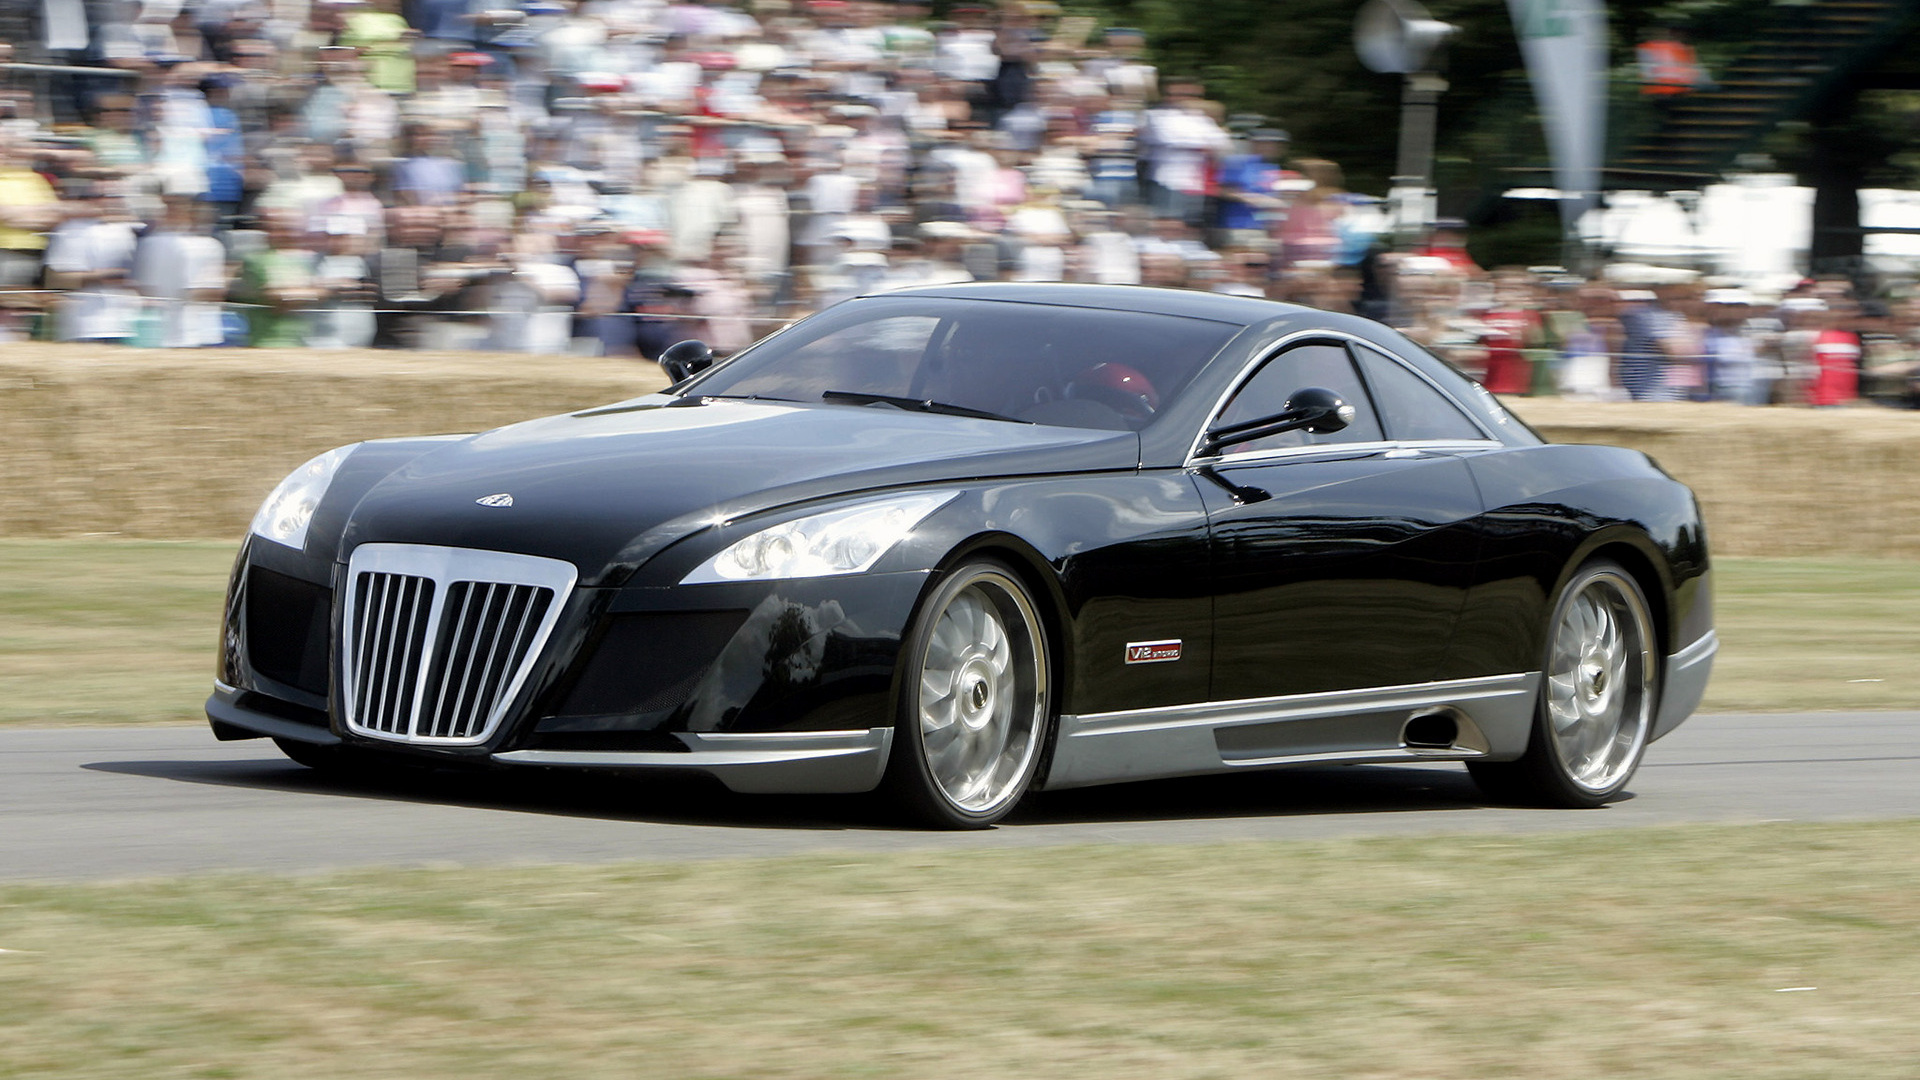 2005 Maybach Exelero Show Car - Front - 1280x960 Wallpaper